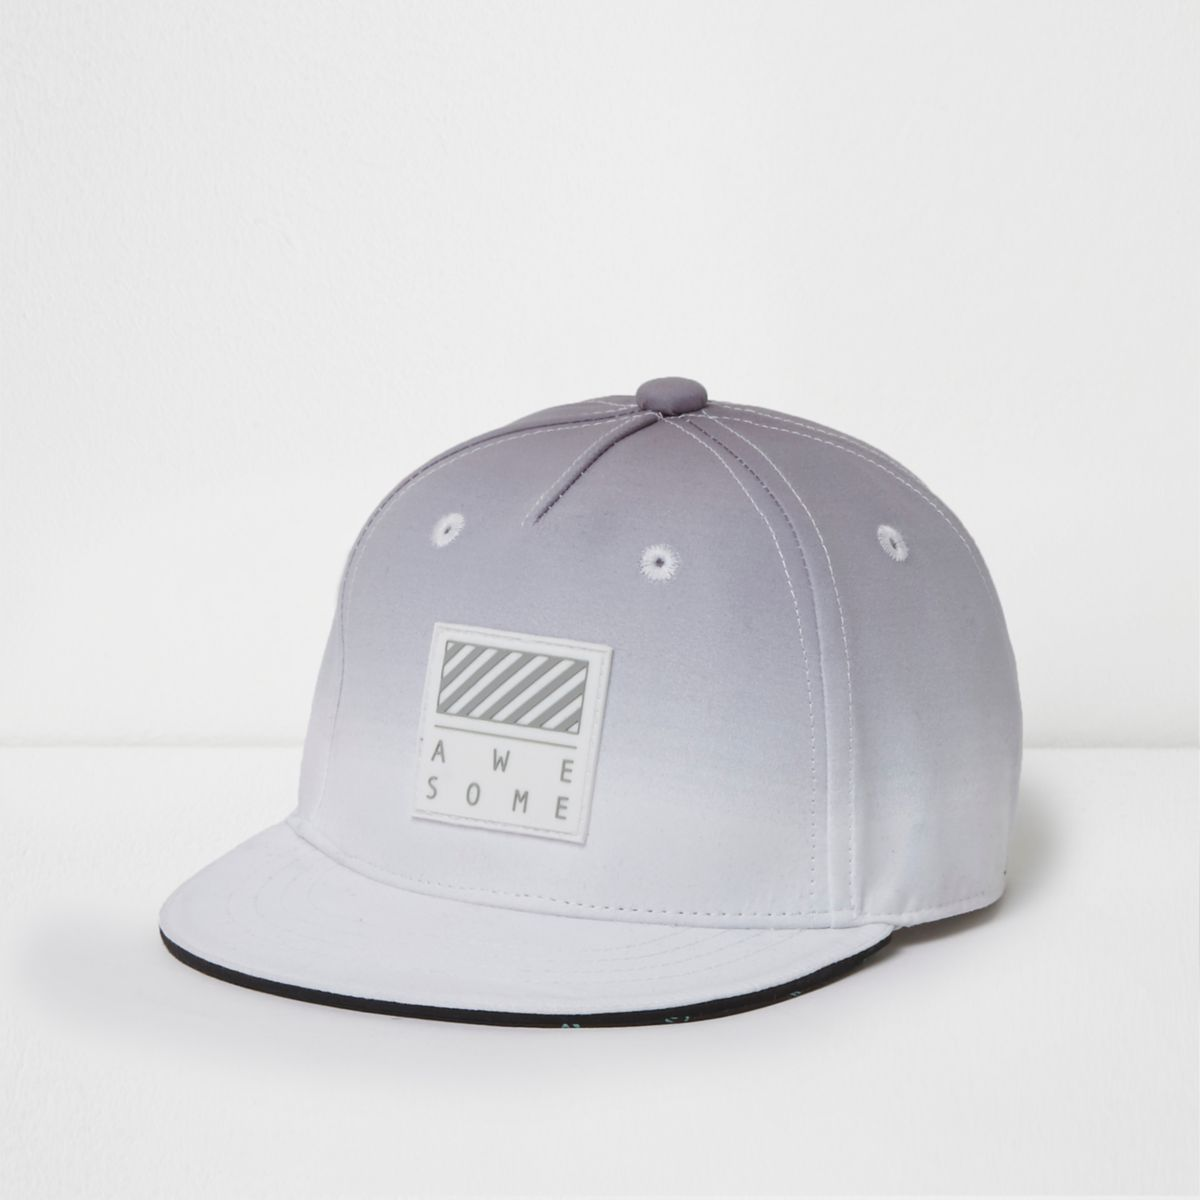 Children Peak Cap Flat Hat Country Newsboy Cabbie Golf Hats. Available in black check, Beige and Brown check designs. Available in different size and colours. Size: 48cm, 50cm, 52cm, 54cm.